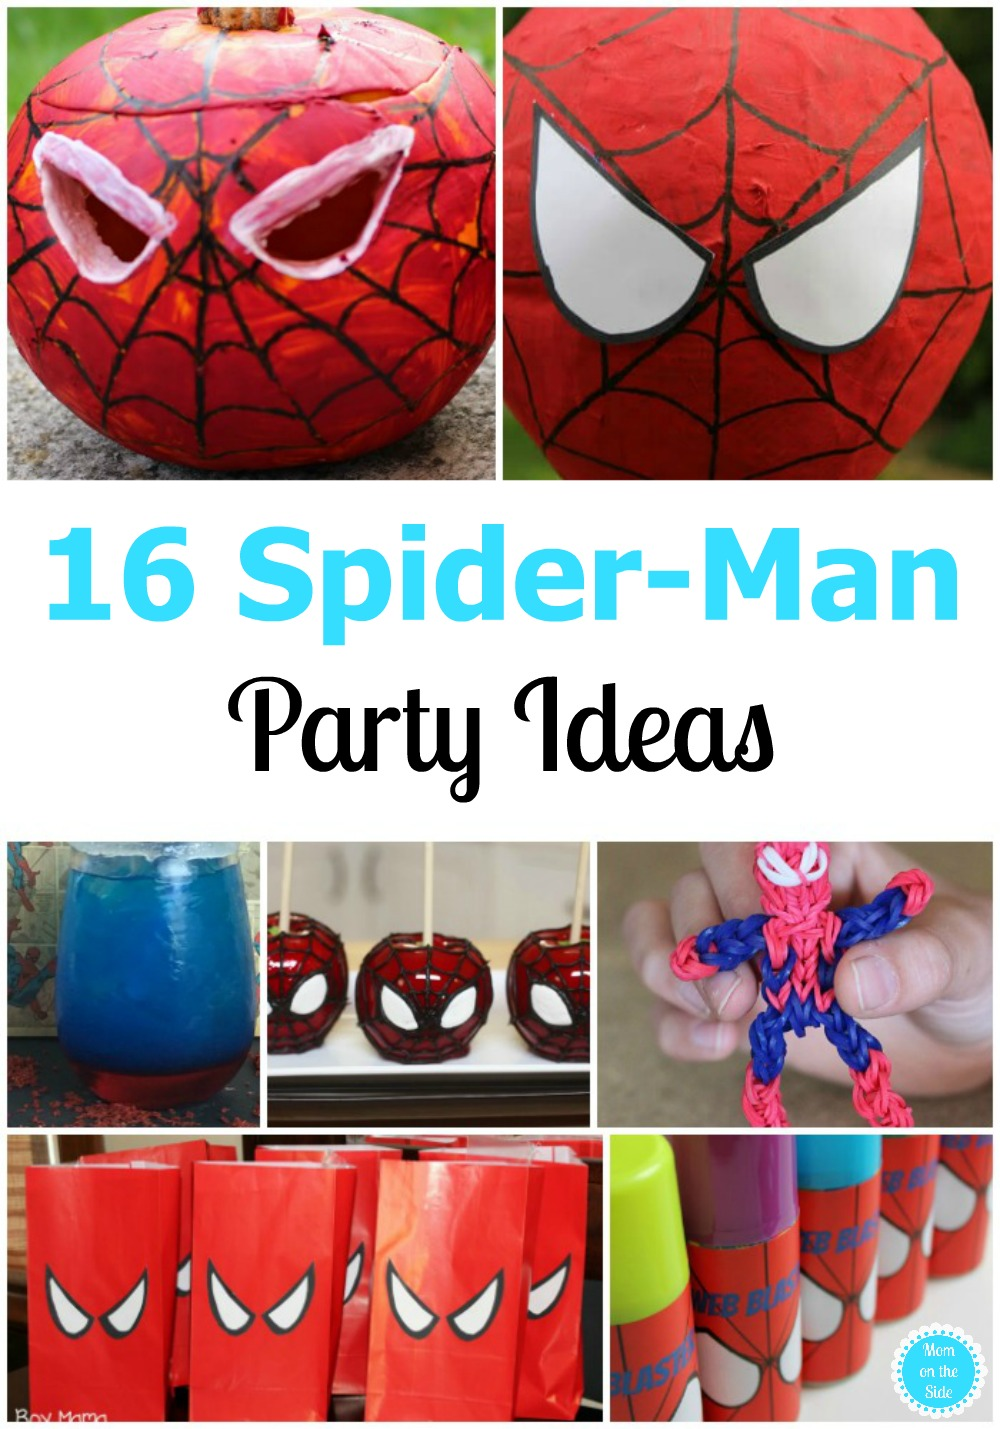 Spider-Man Party Ideas and Party Printables